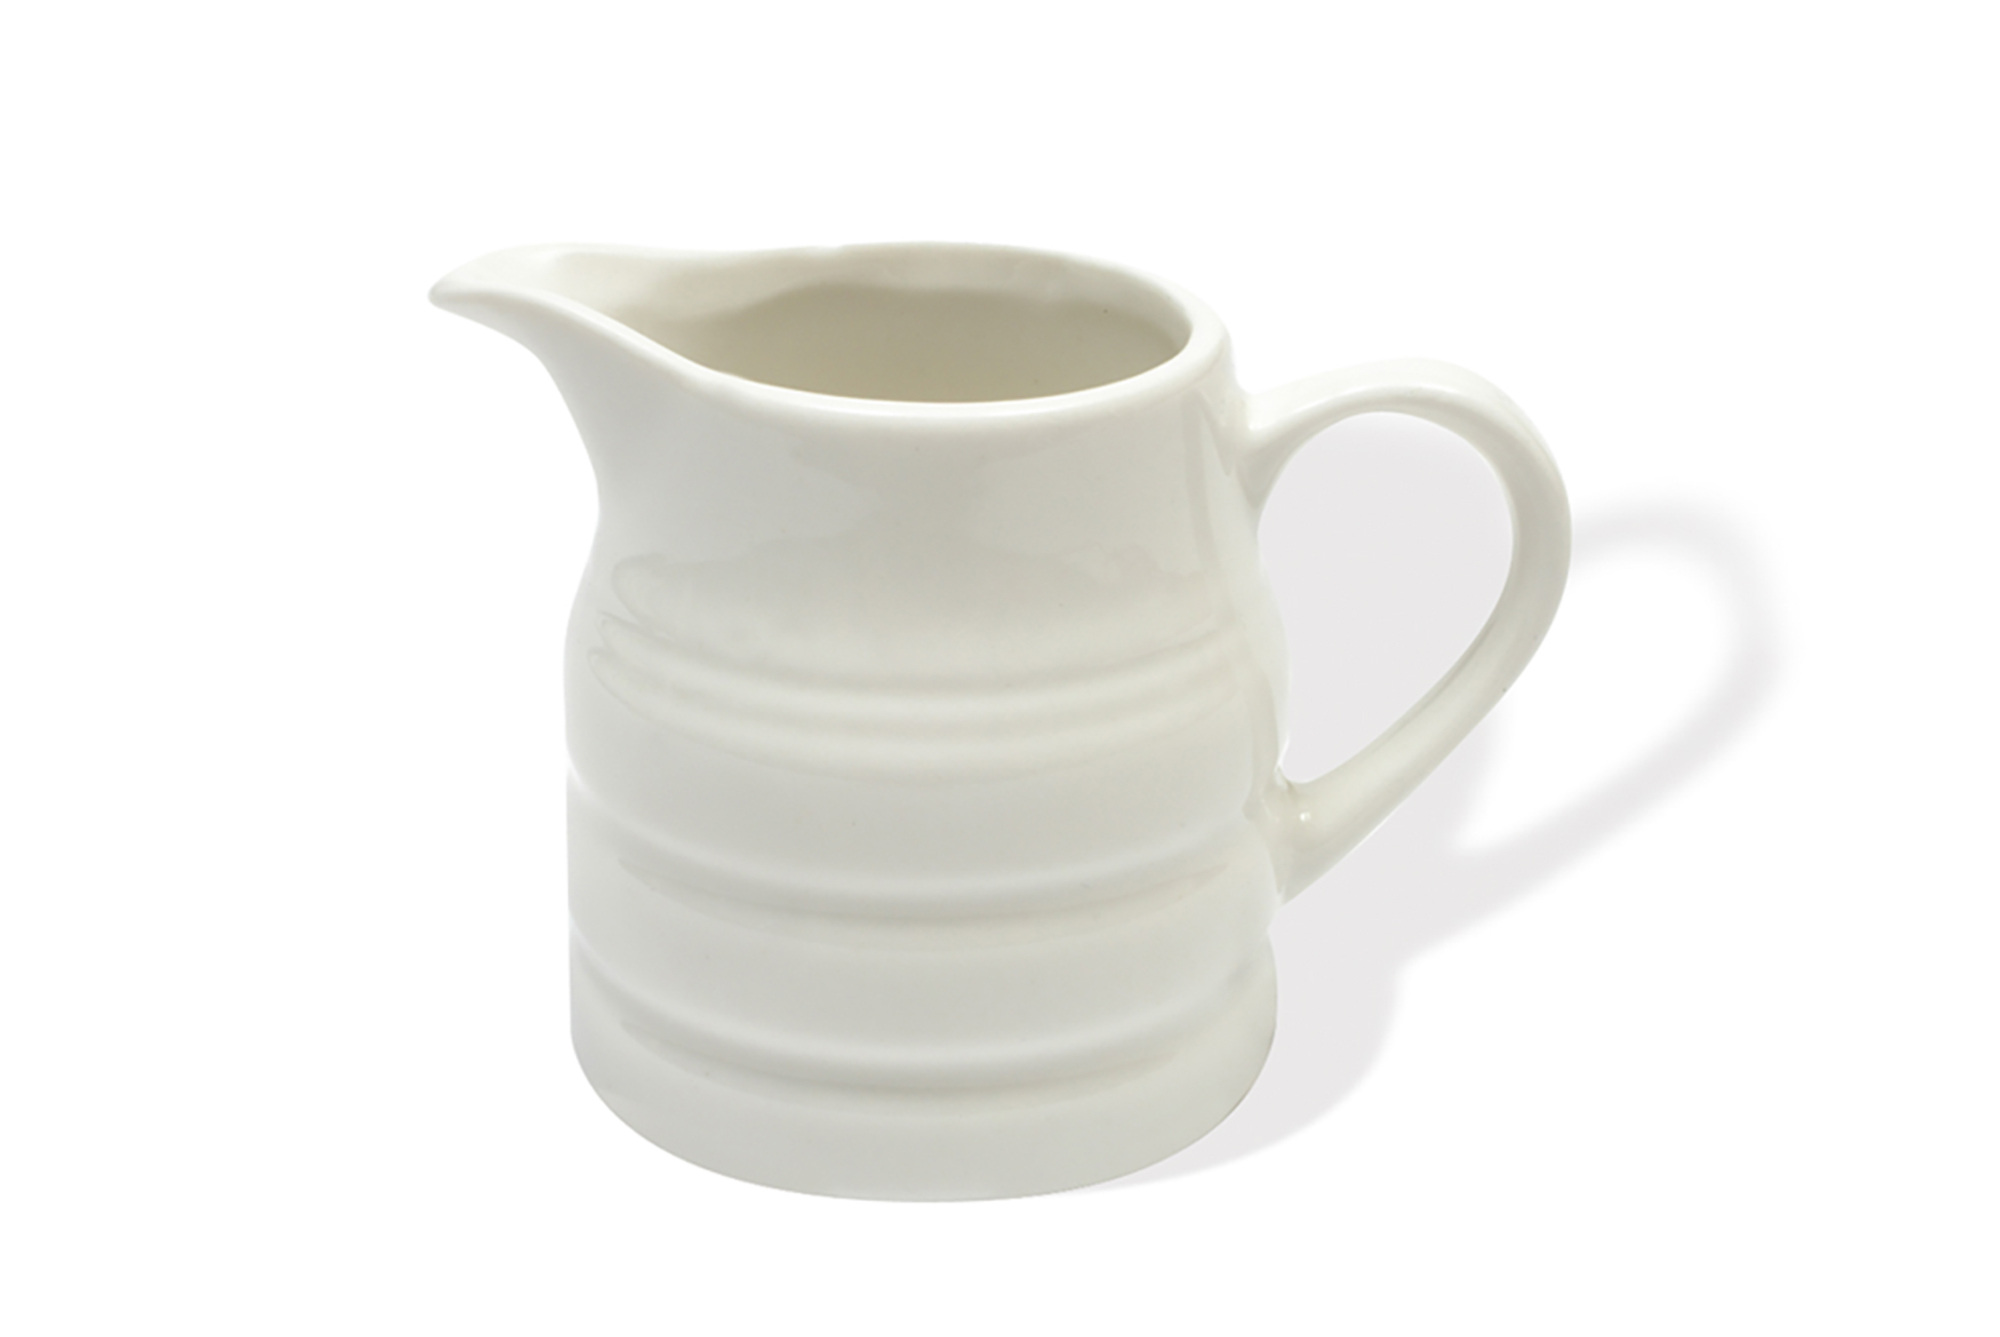 Maxwell & Williams White Basics 180Ml Churn Jug